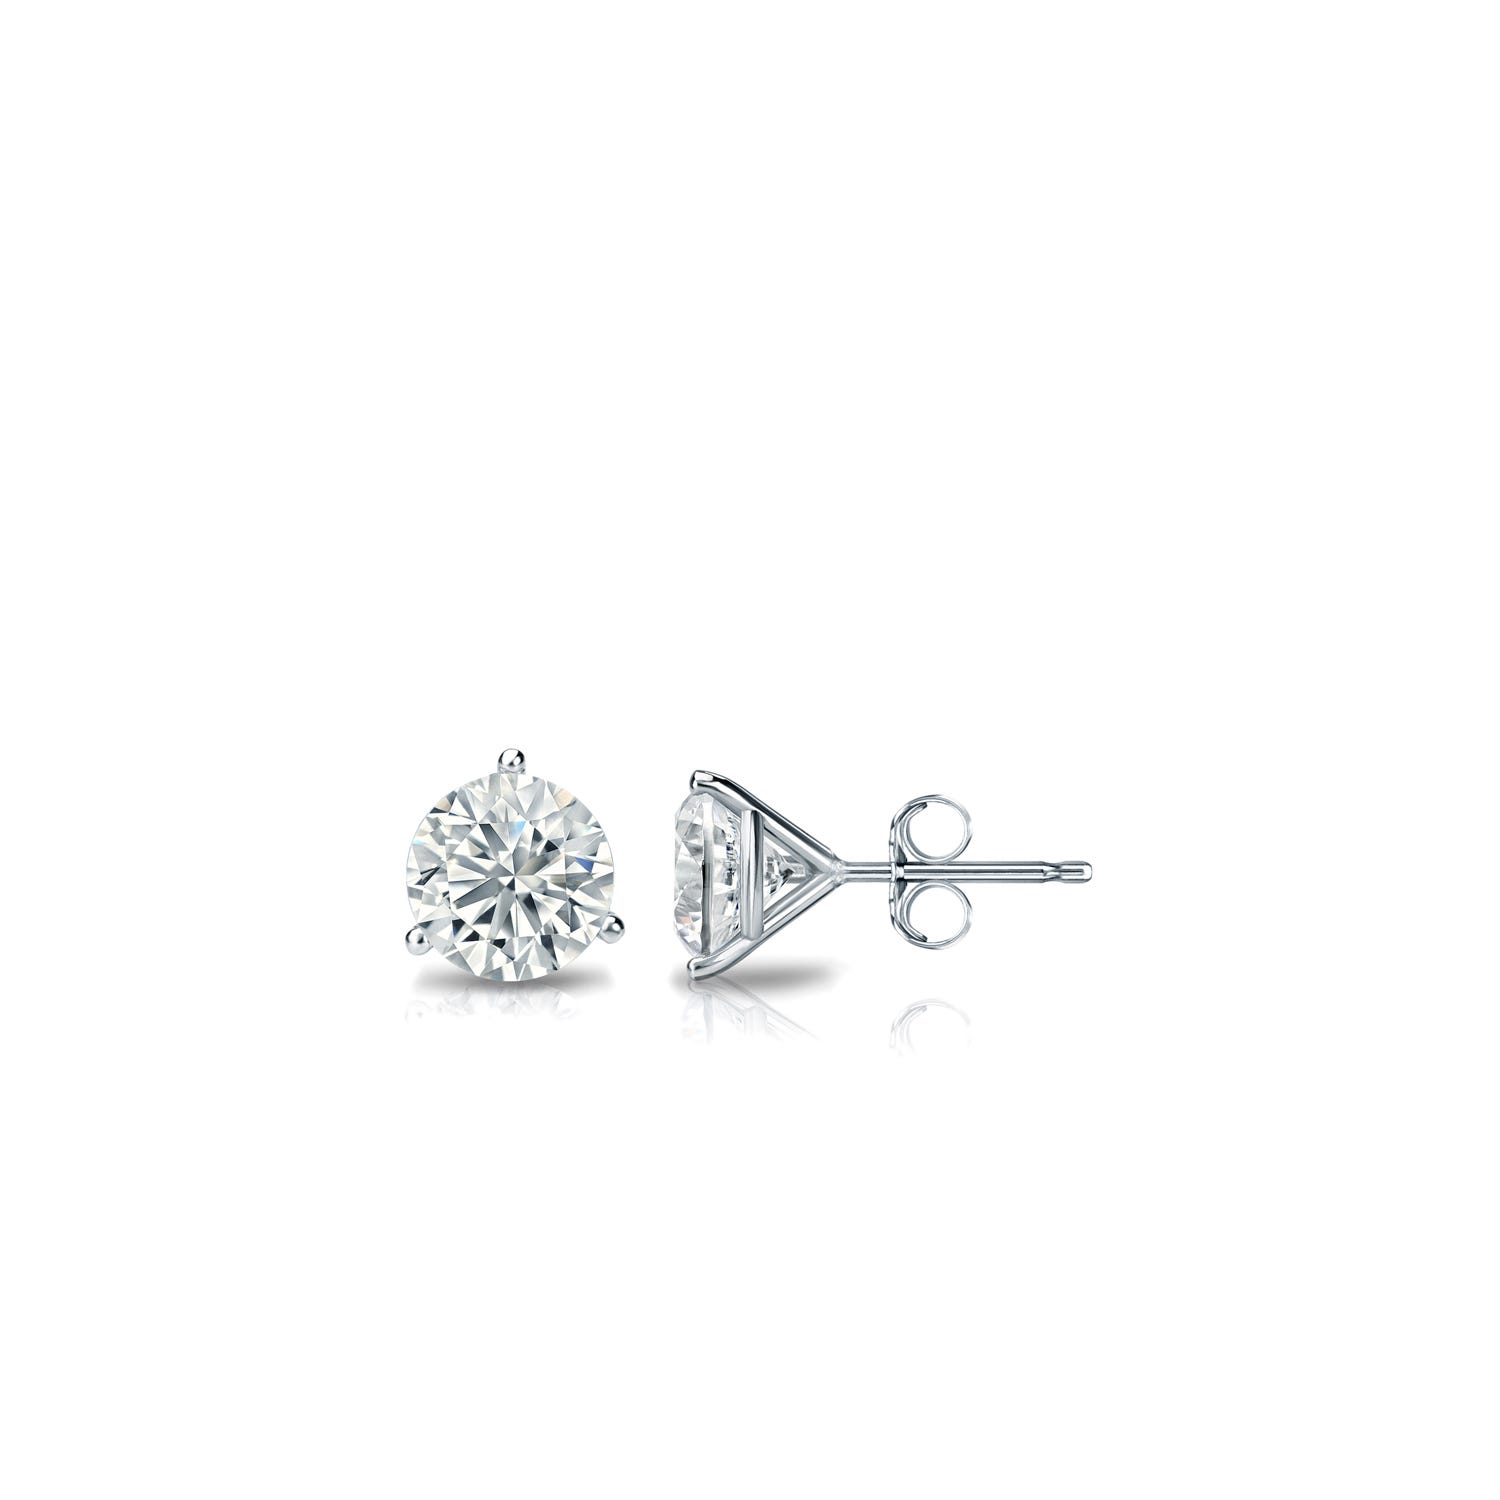 1/6 CTTW Round Diamond Solitaire Stud Earrings IJ I2 in 14K White Gold 3-Prong Setting